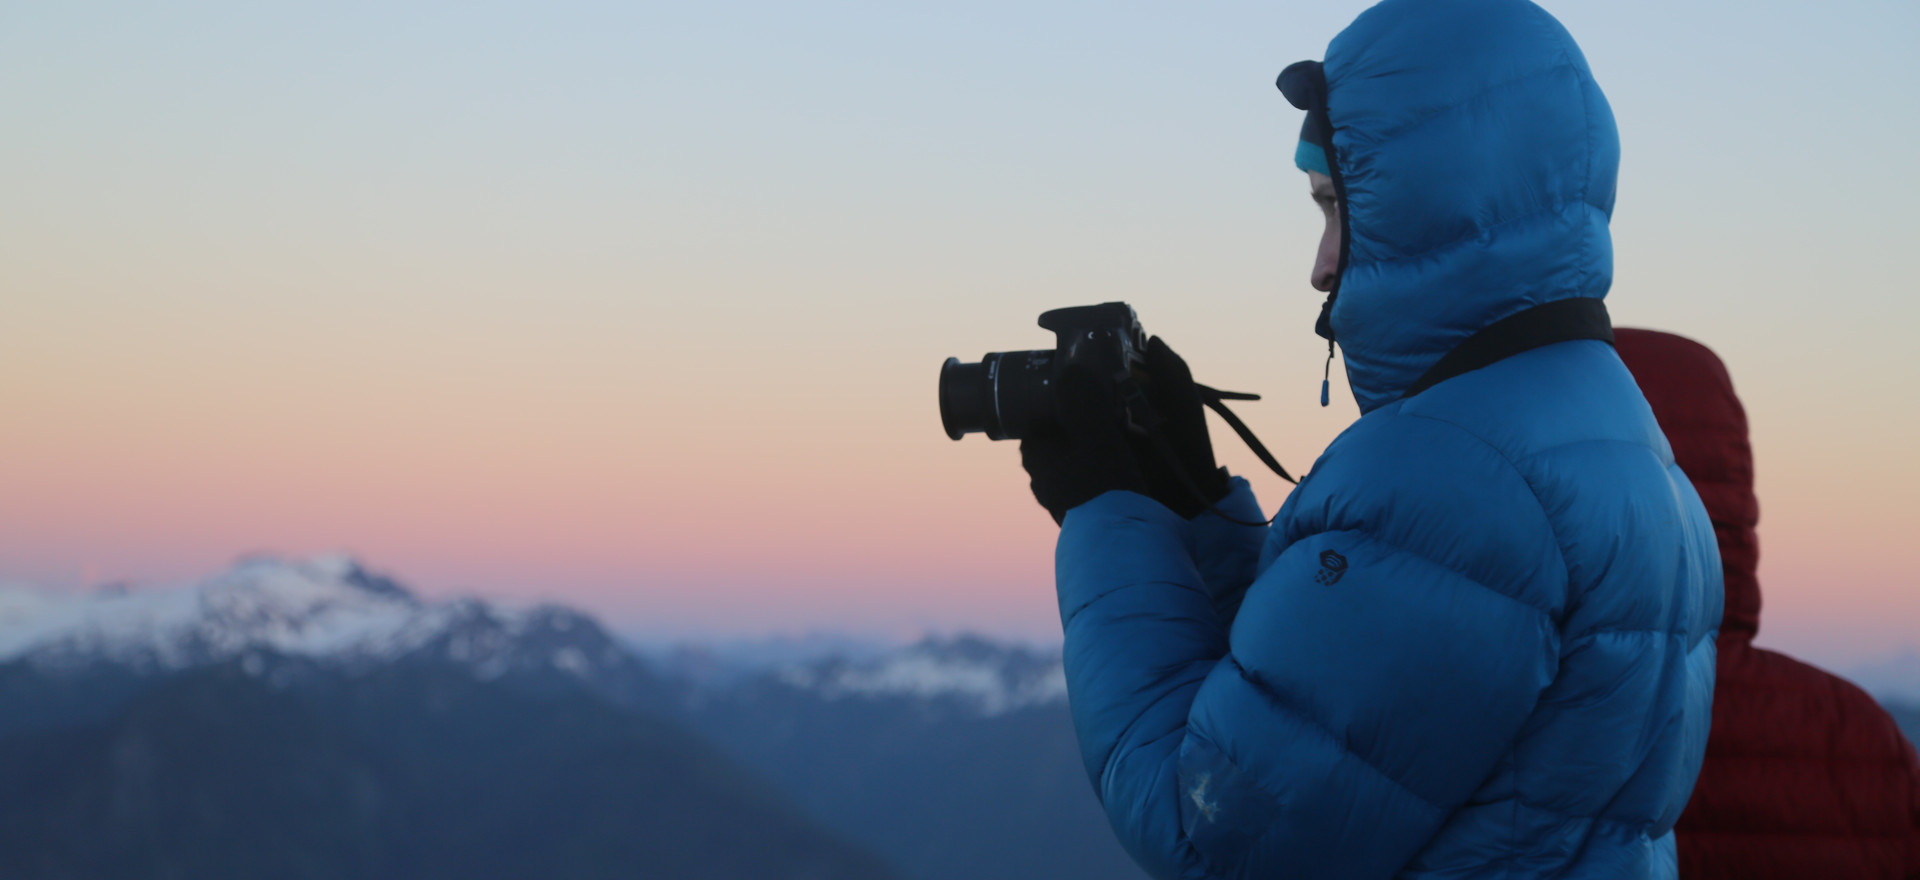 Filming the sunset on a climb of Mt. Shuksan.